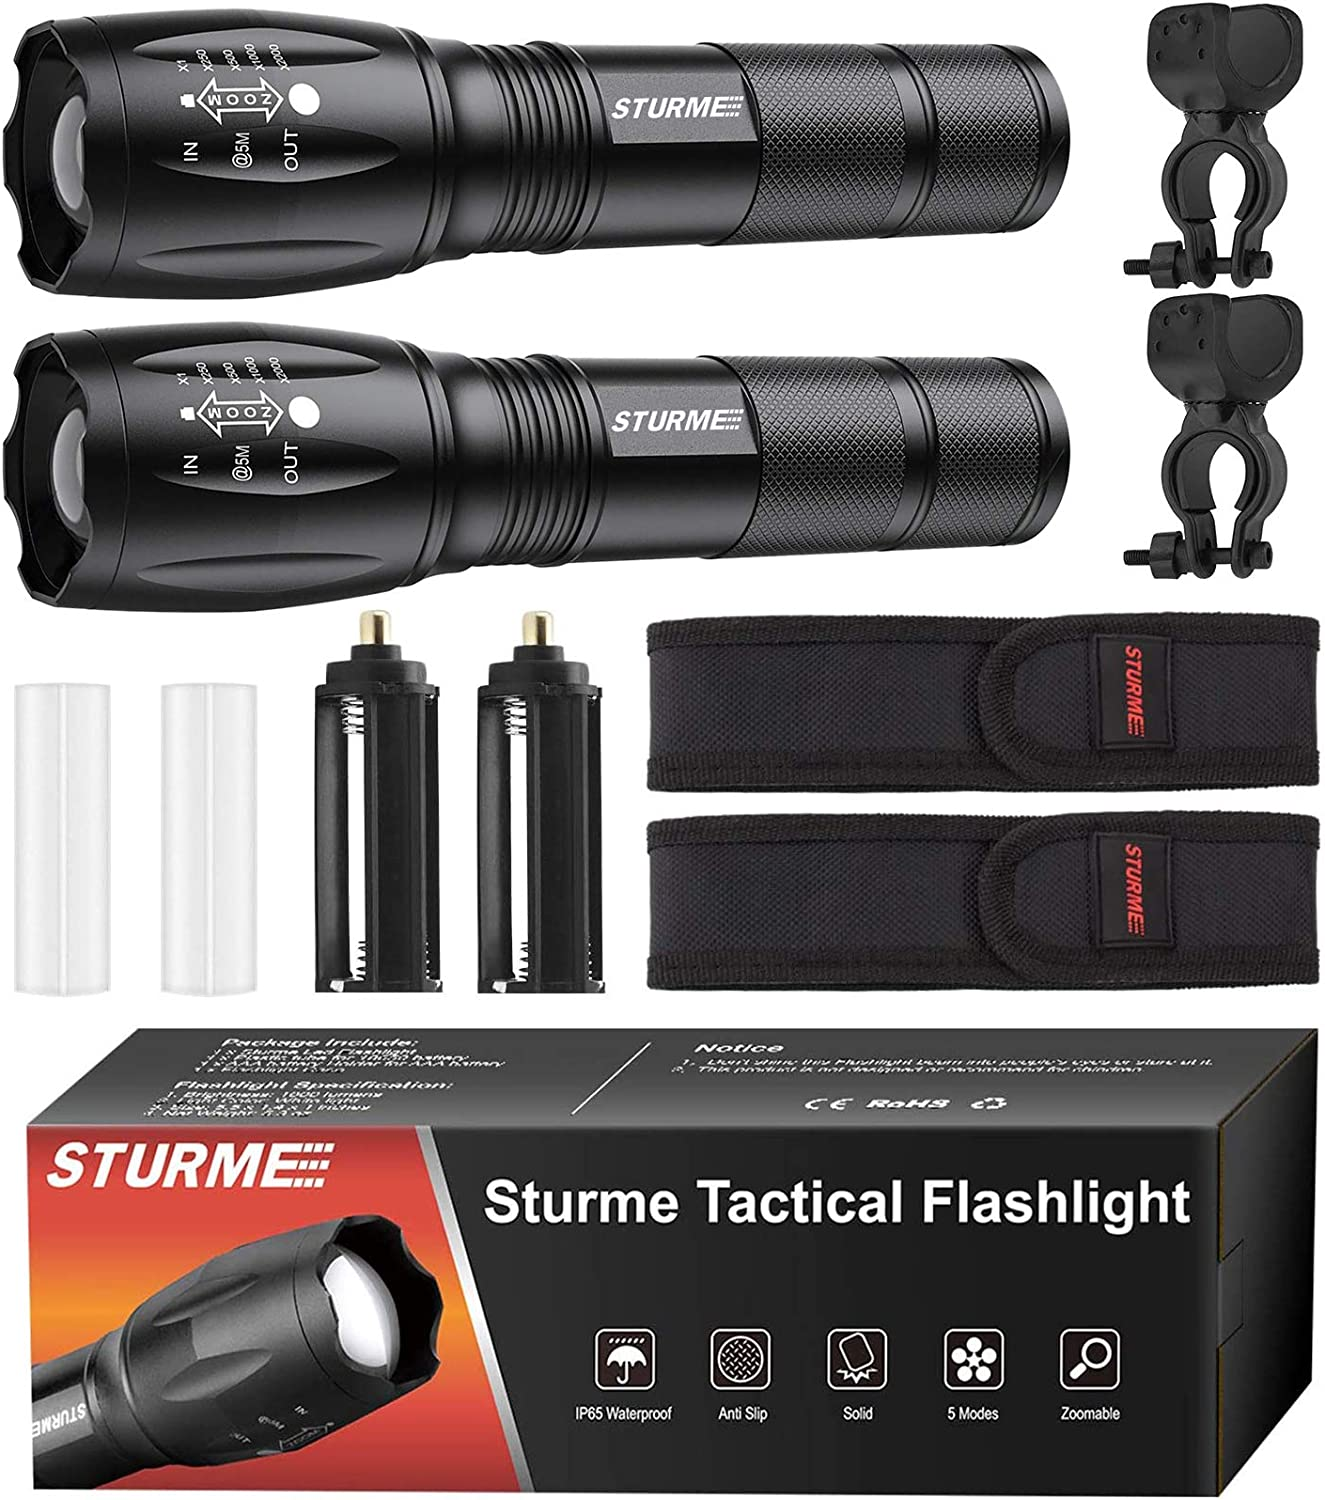 STURME LED Tactical Flashlight,5 Modes Ultra Bright Zoomable IP65 Water-Resistant High Lumens CREE LED Handheld Flash Light, Perfect for Camping Outdoor Sports Home Use